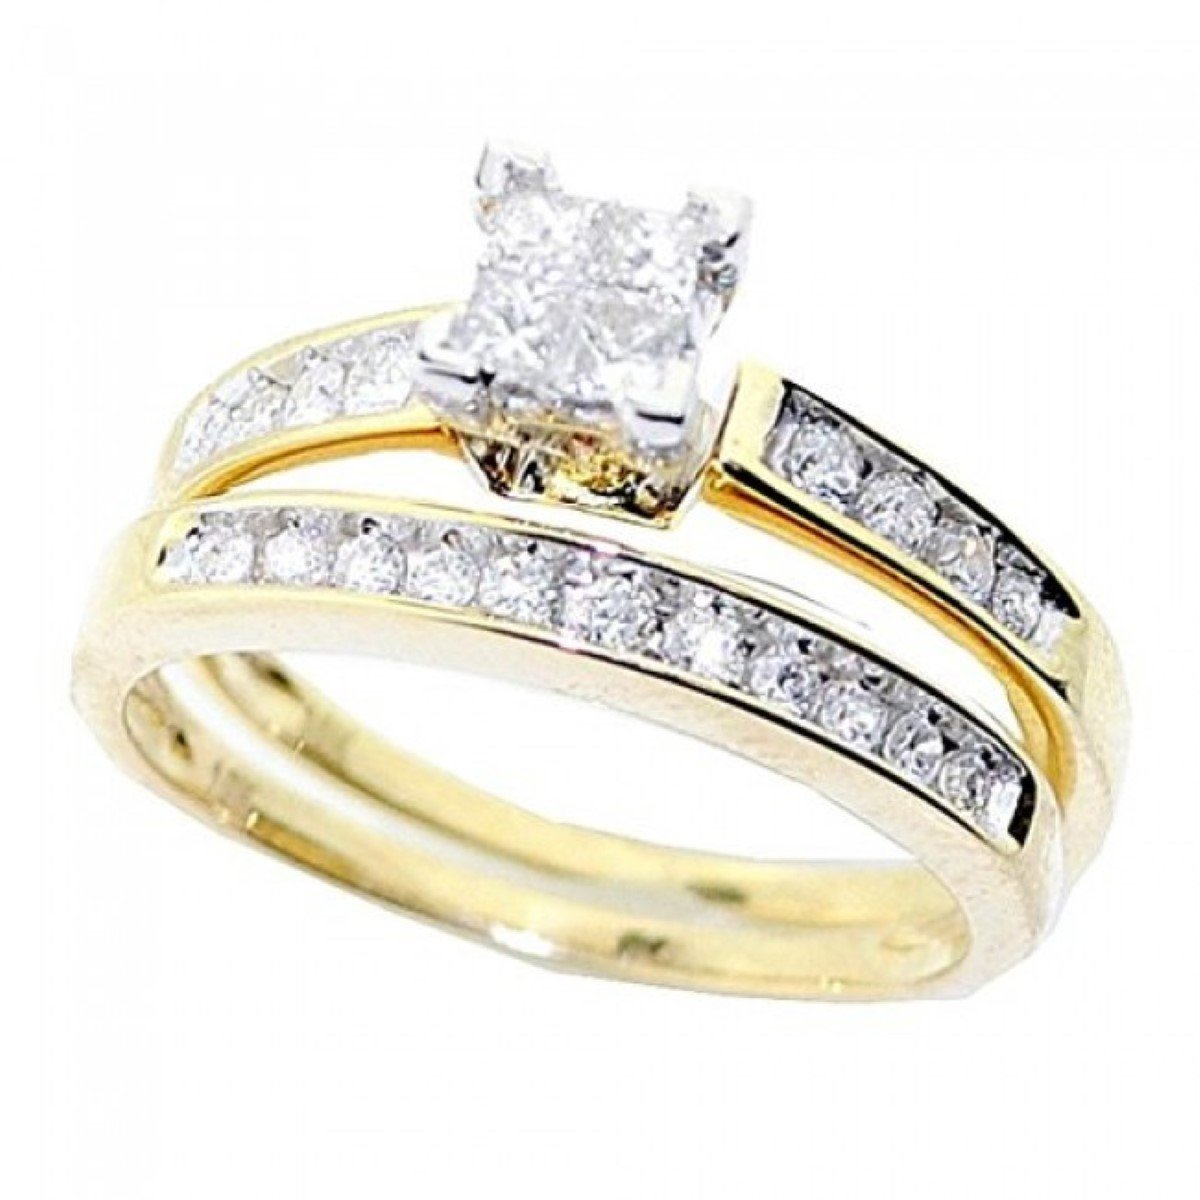 Princess Cut Diamond Engagement Ring and Wedding Band Set 1/2 Carat (ctw) in 10K White Gold (yellow-gold, 6)